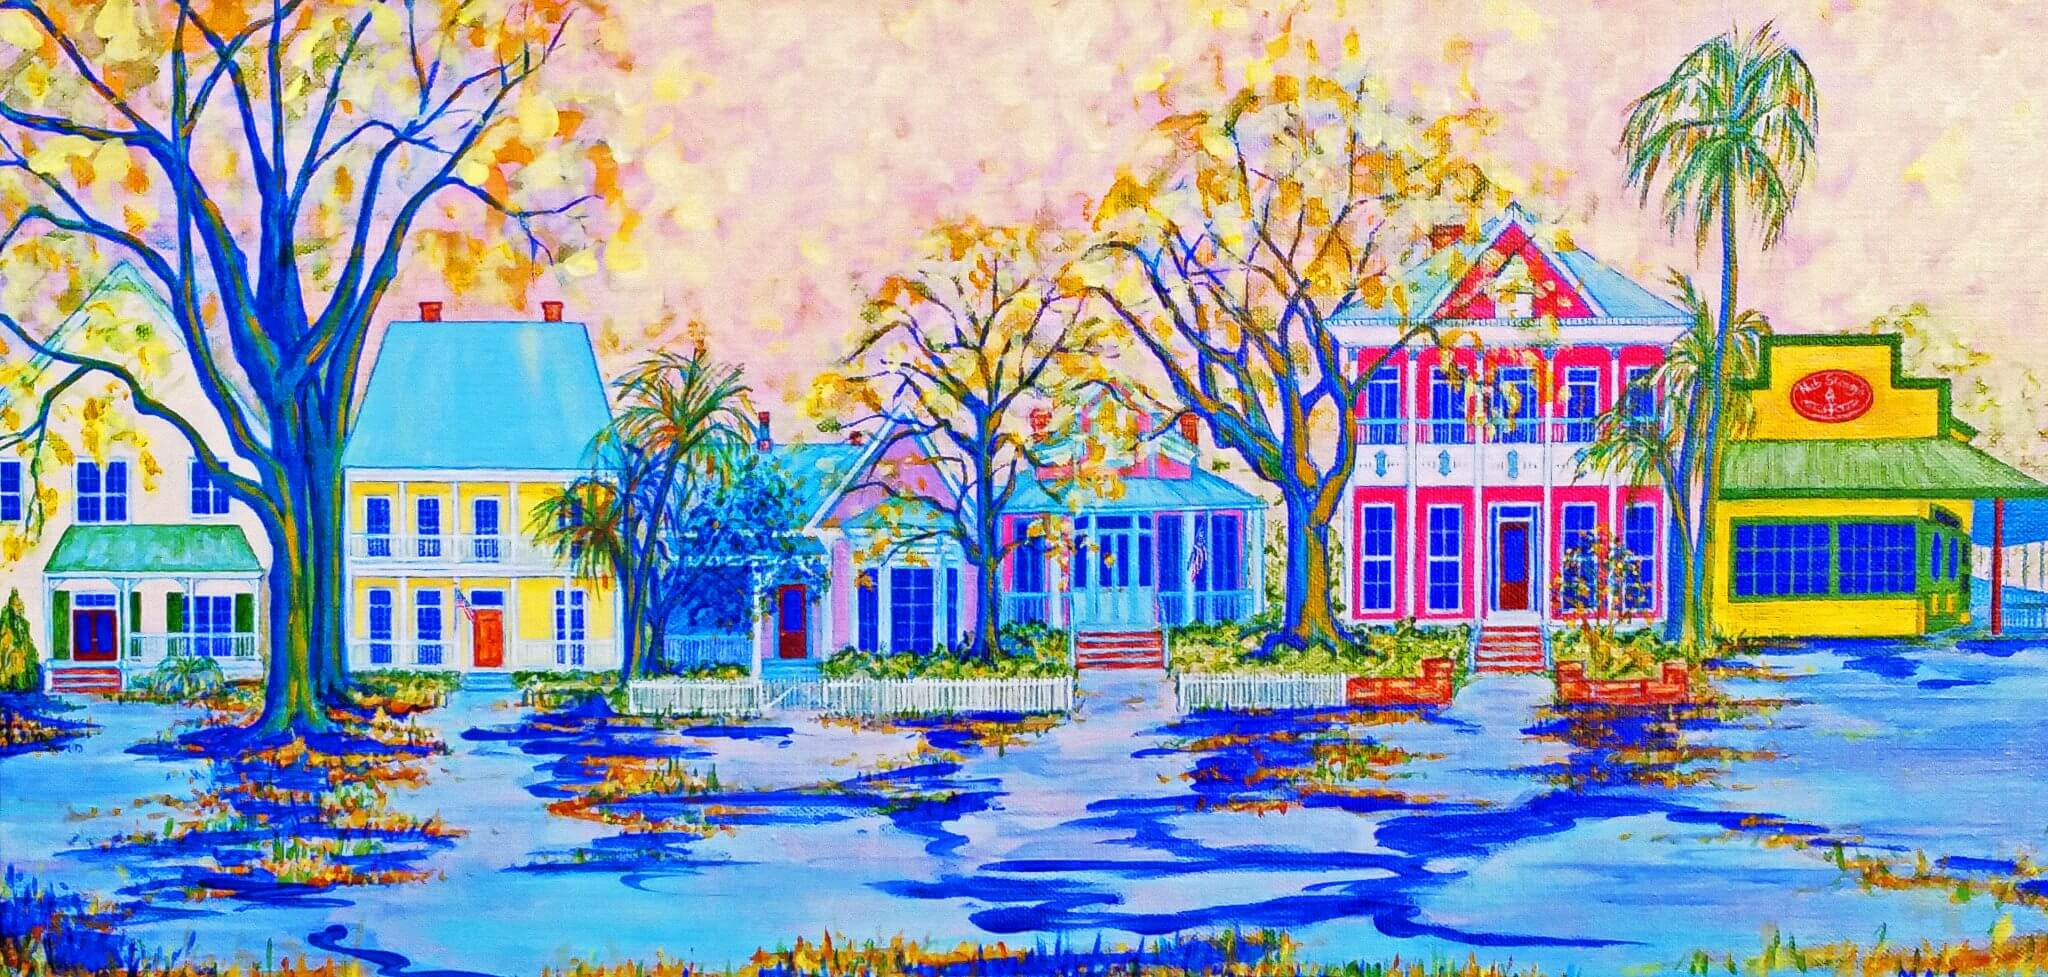 Historic Pensacola painting by Mary Anne Sweida at Blue Morning Gallery